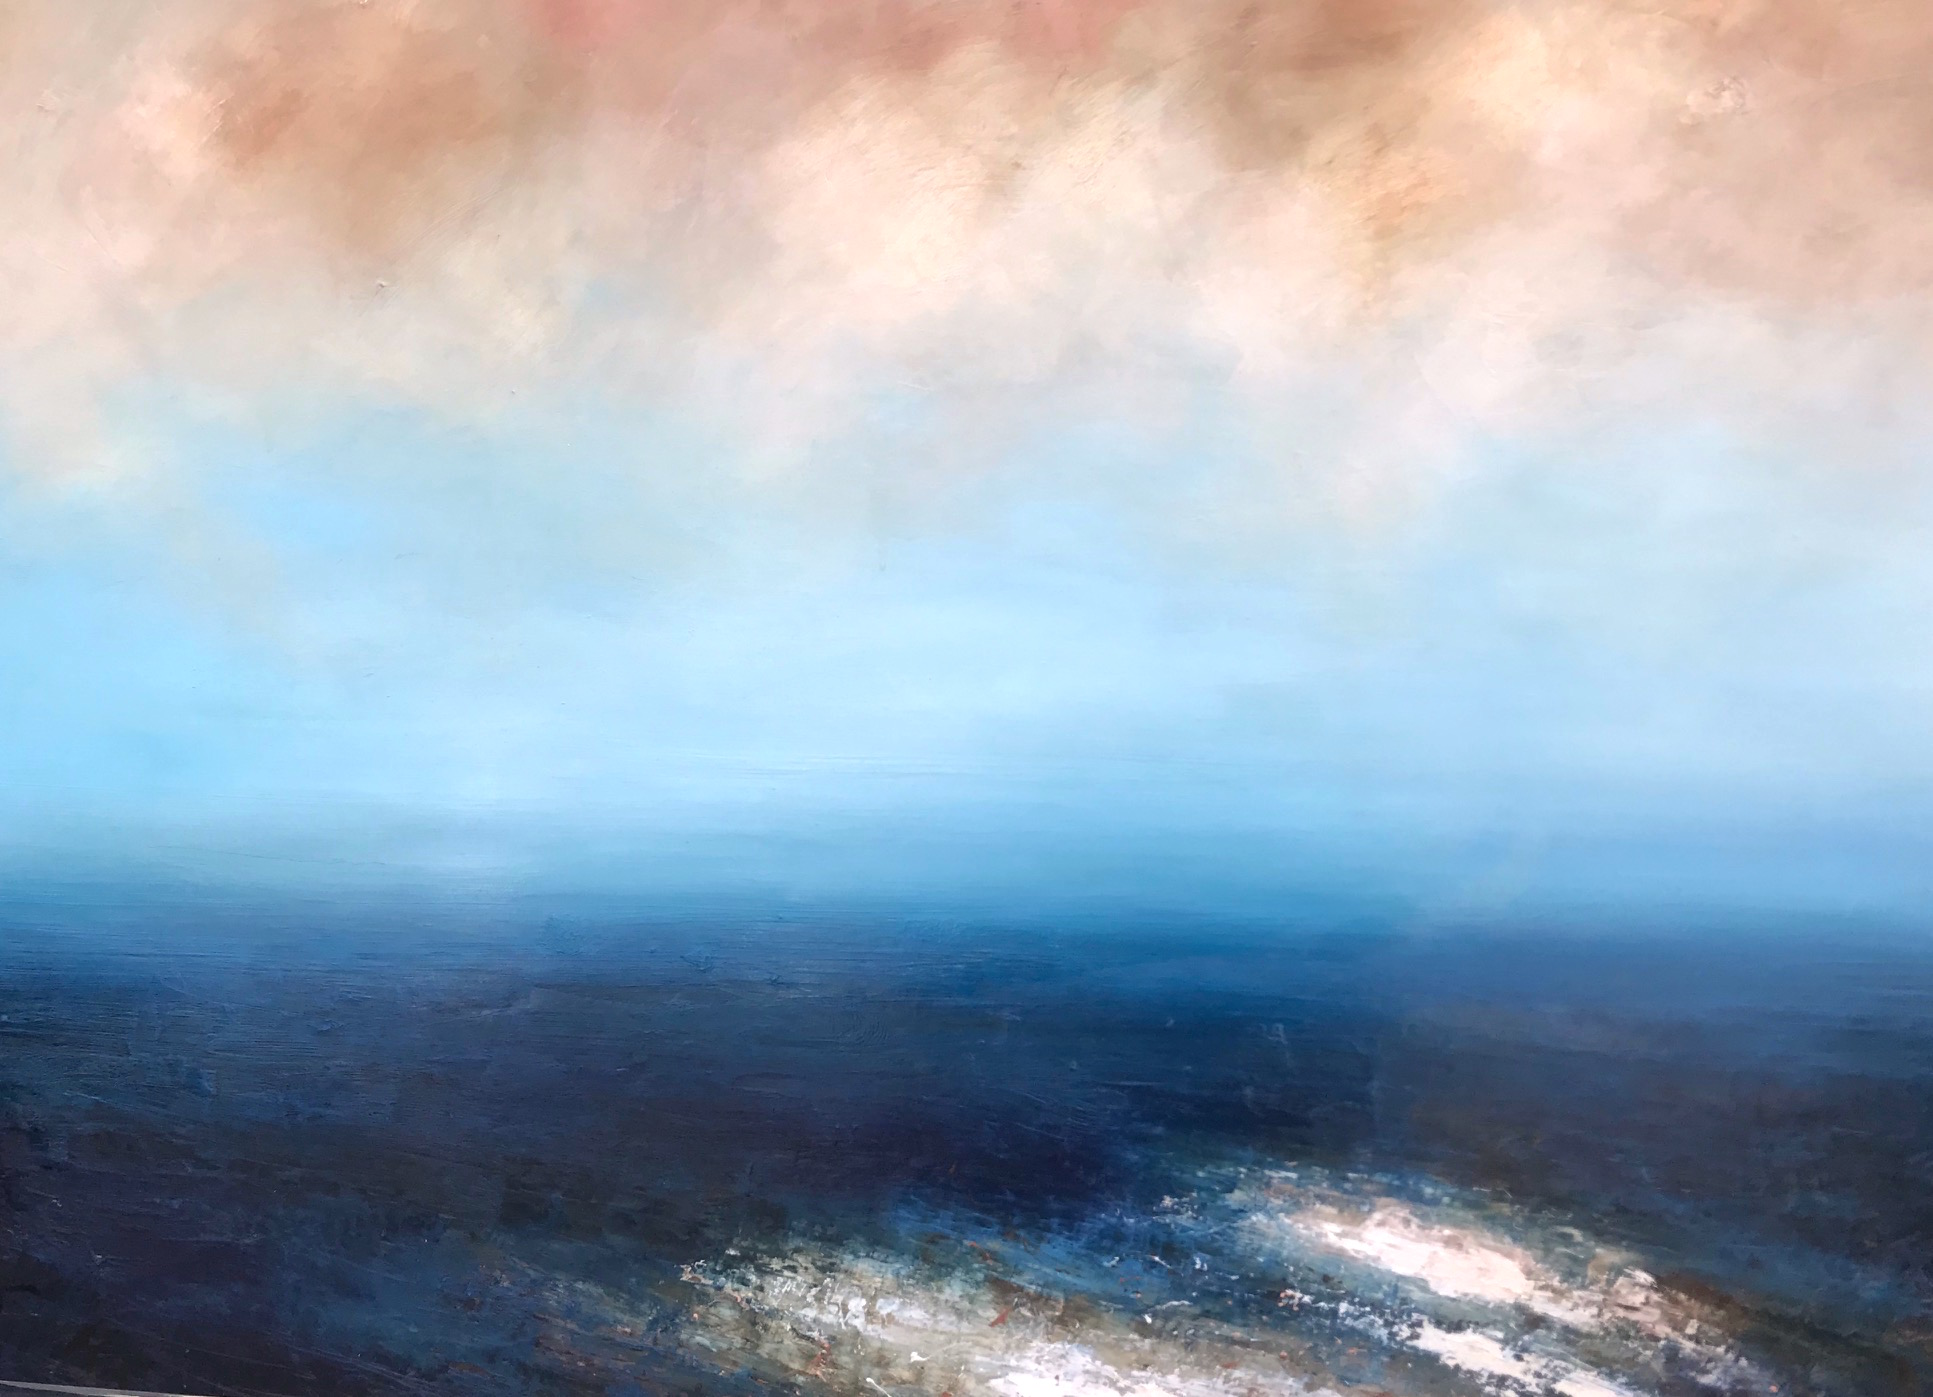 Artist: Hannah Ludnow  Title: Glisten  Size: 95 x 130cm  Medium: oil on canvas  Price: £1850  SOLD